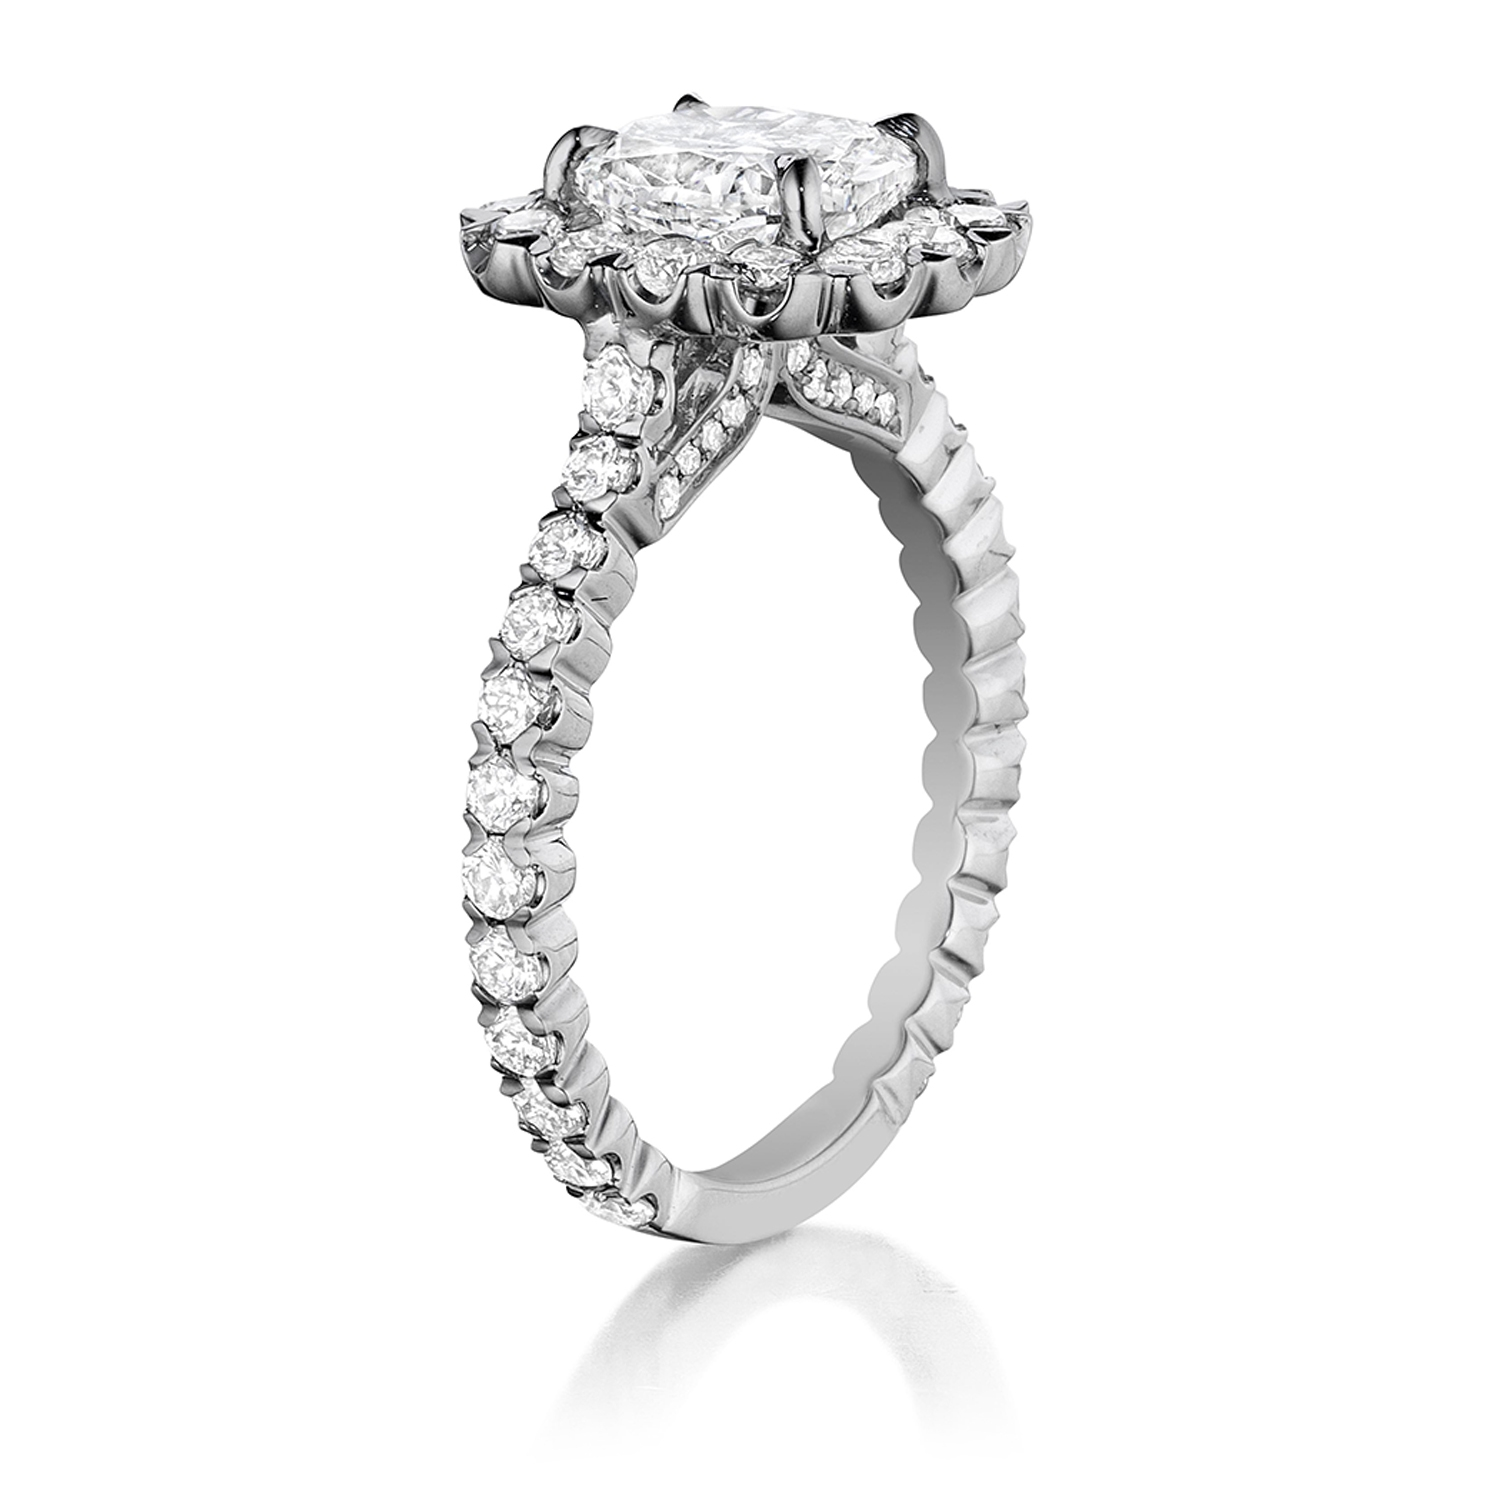 Henri Daussi AJK Unique V-Prong Cushion Halo Diamond Engagement Ring Alternative View 1